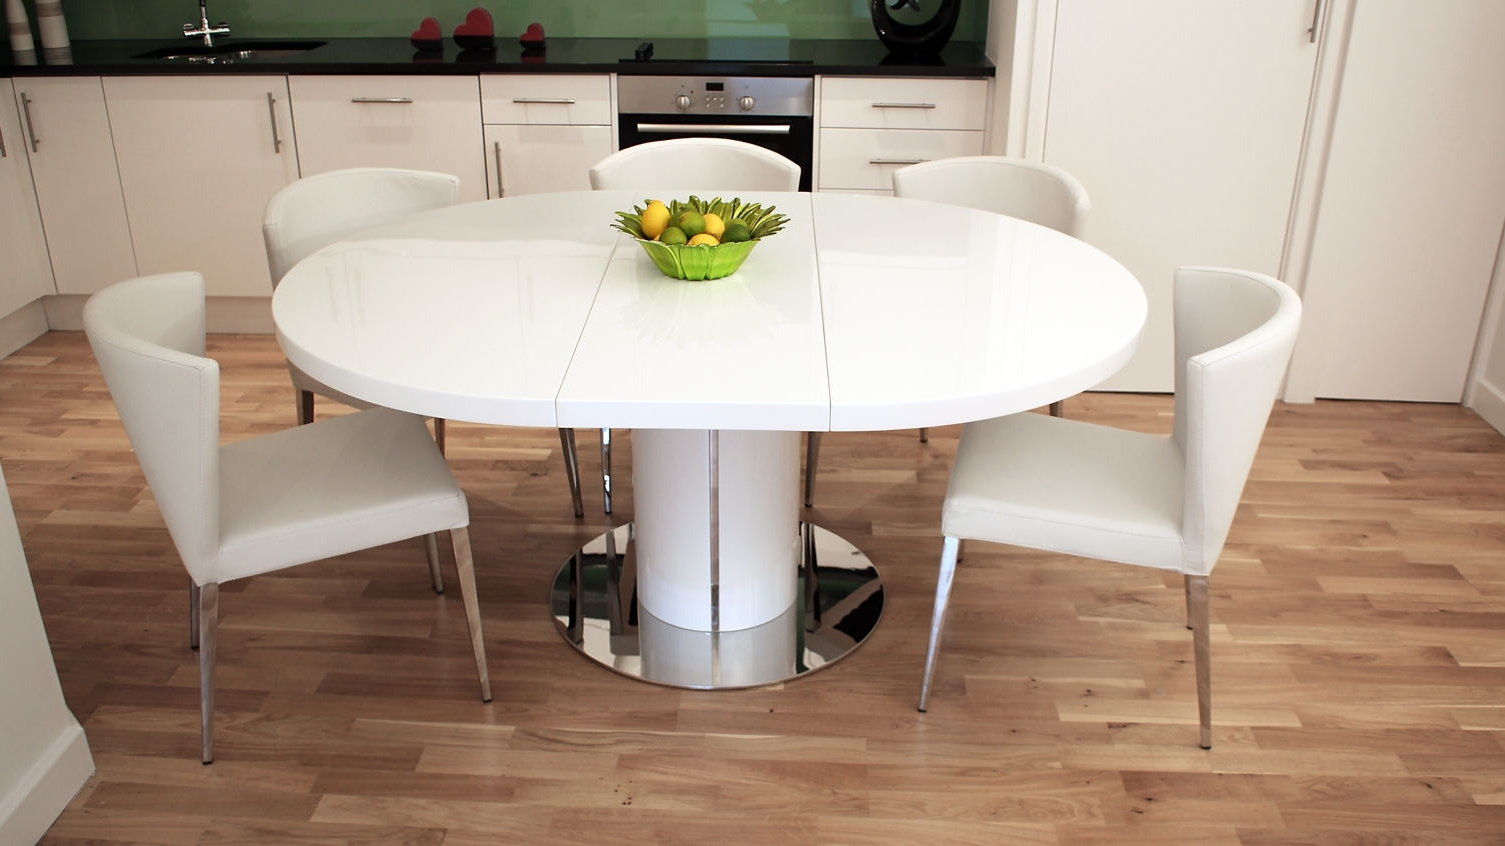 White Round Extendable Dining Tables Pertaining To Most Up To Date Diy Painting White Round Dining Table — The Home Redesign (View 20 of 25)